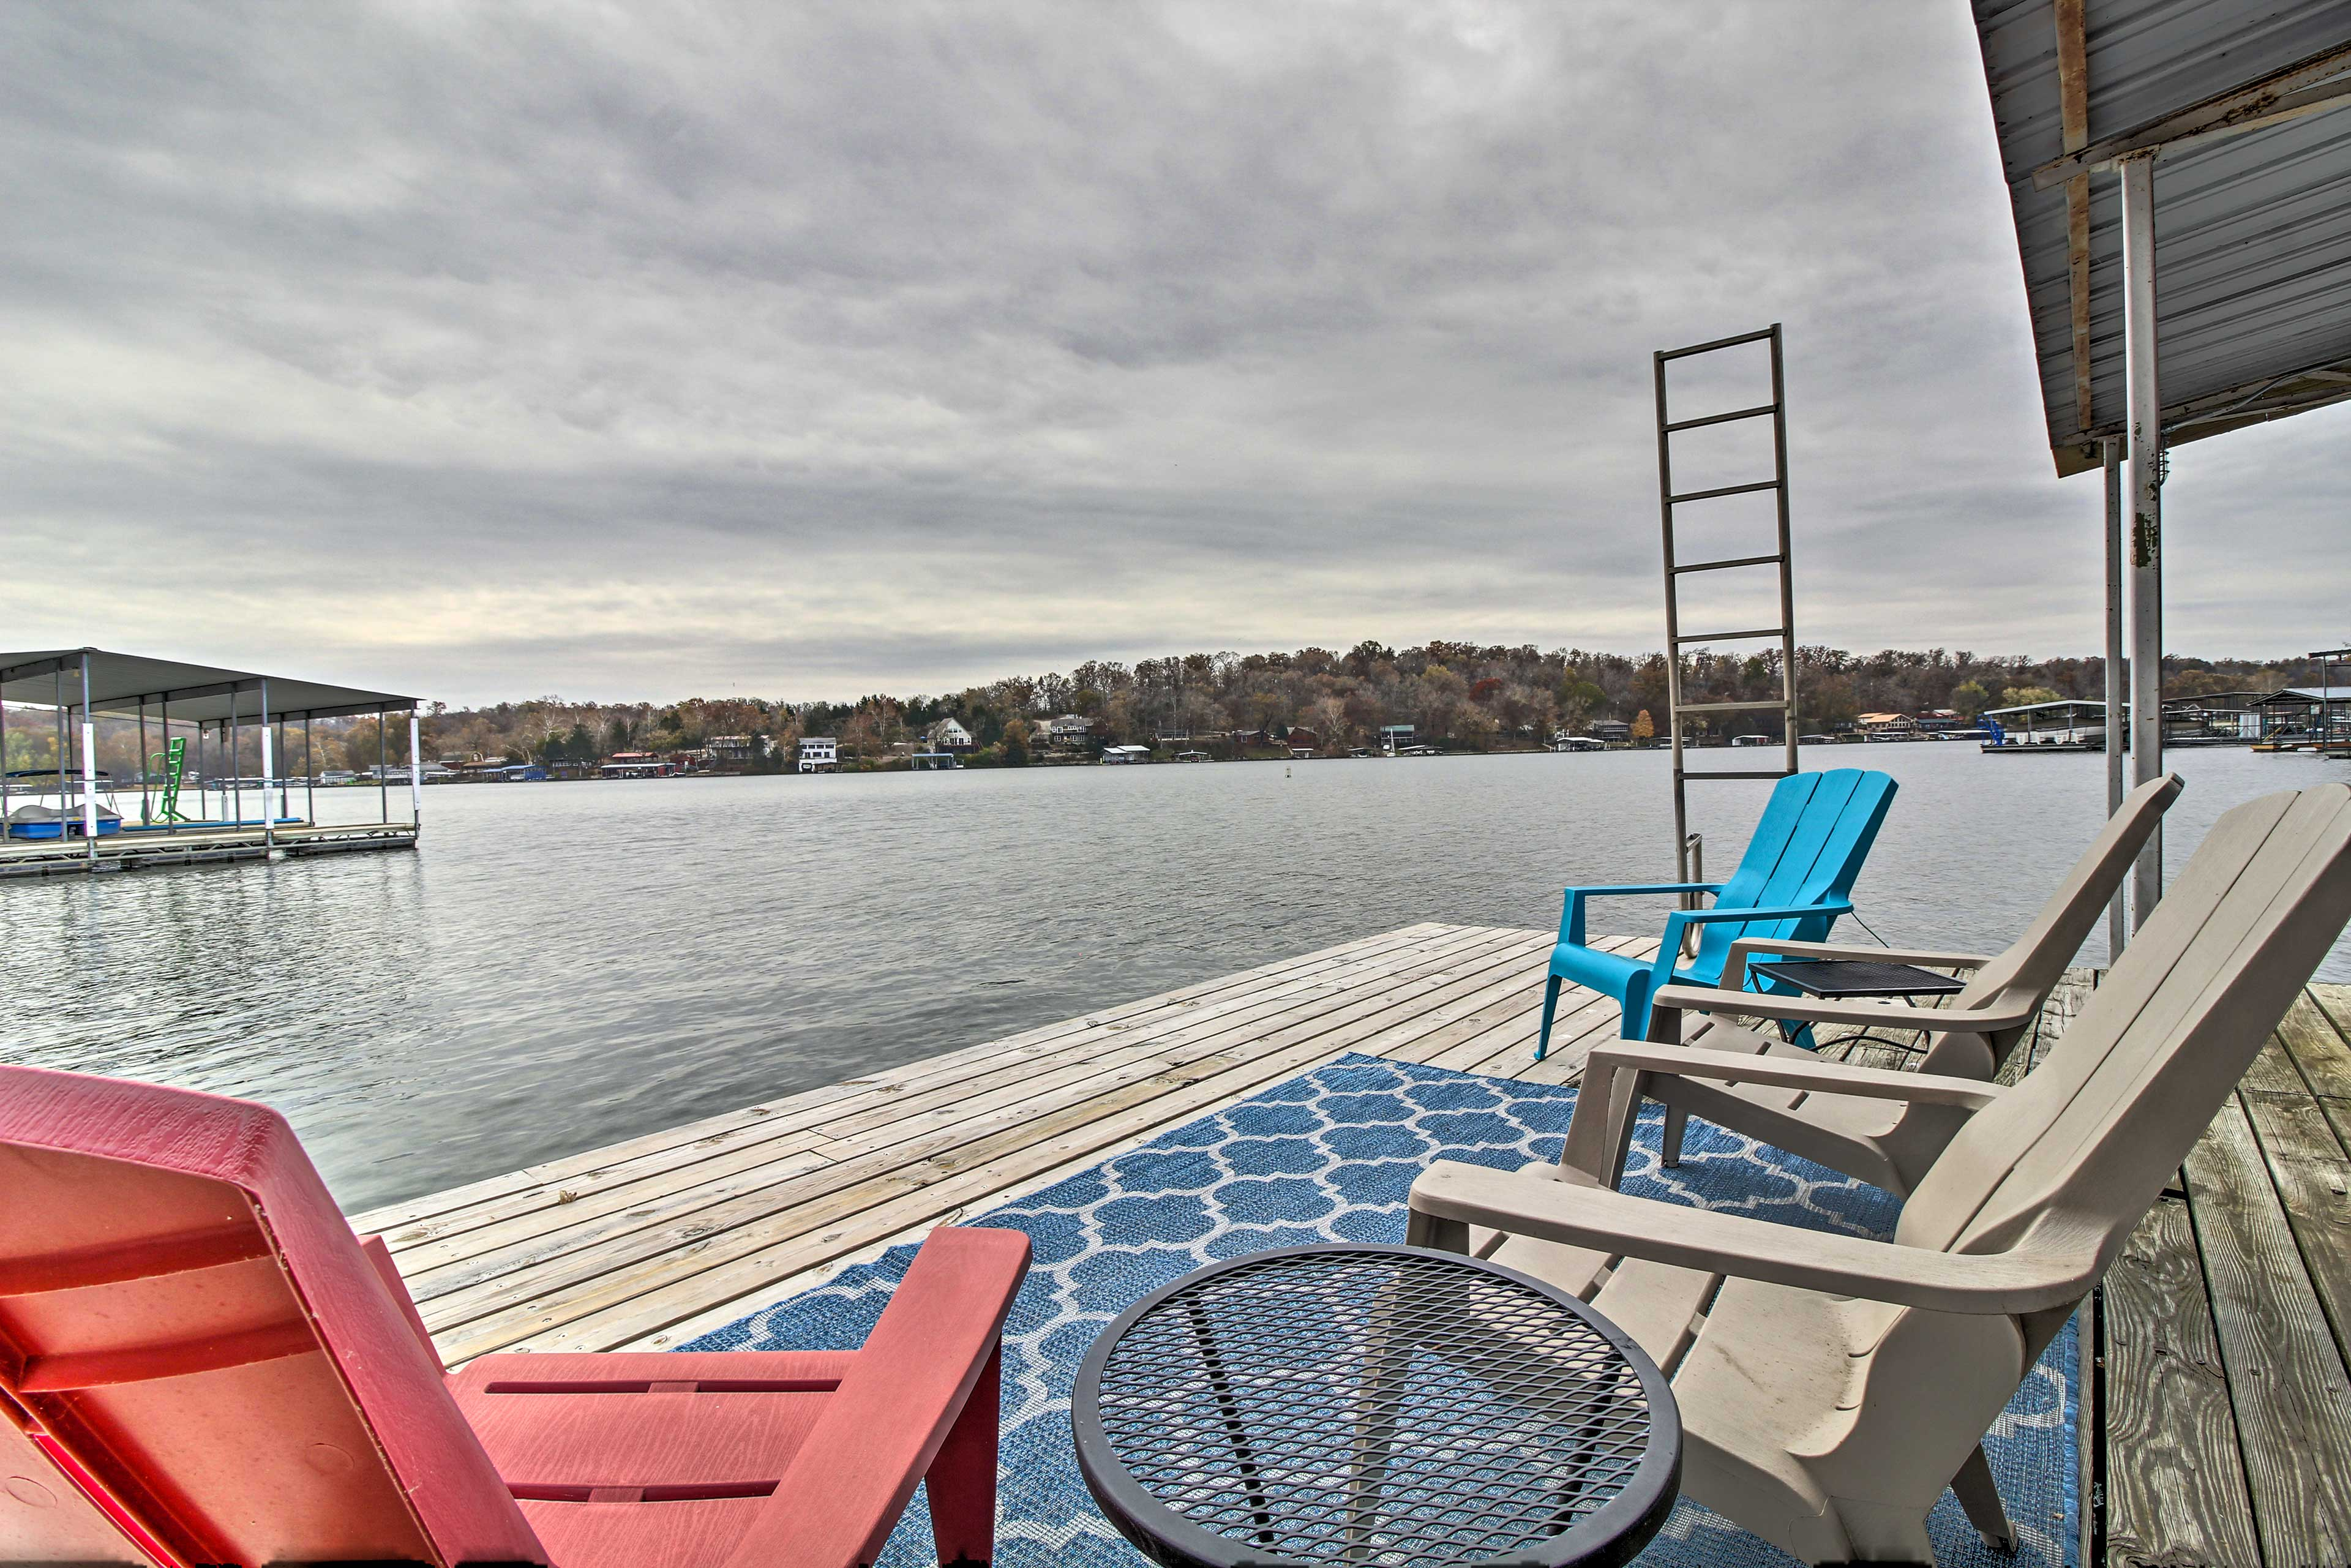 Sit on the deck and watch boats cruise by.